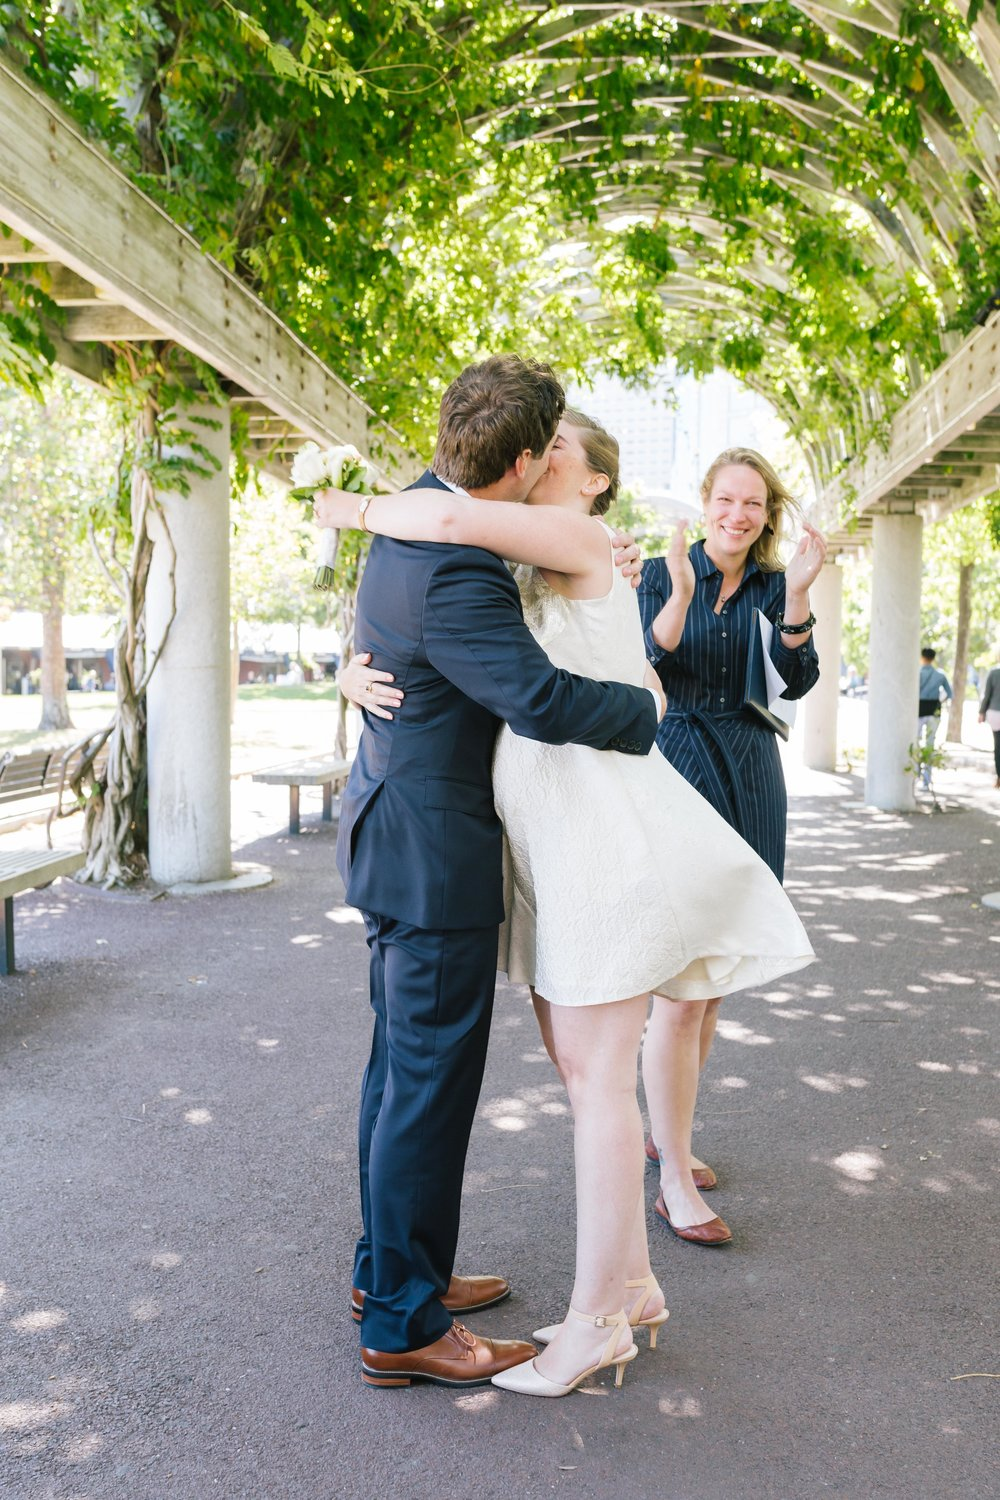 Officially husband and wife - Julie and Patrick's intimate Boston wedding at the Christopher Columbus Waterfront Park